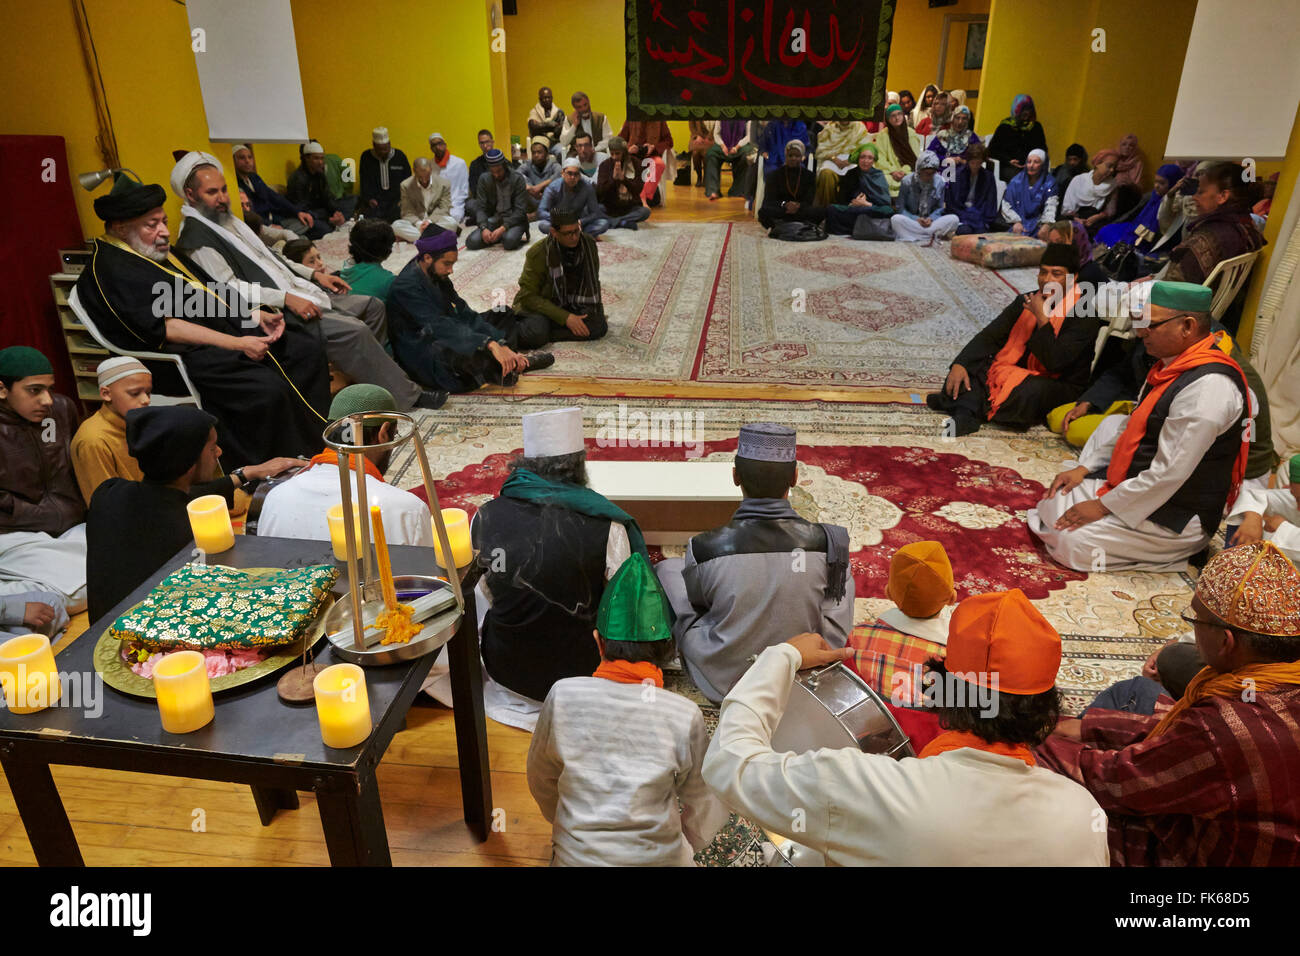 Sufi Muslims gathering in Paris, France, Europe - Stock Image